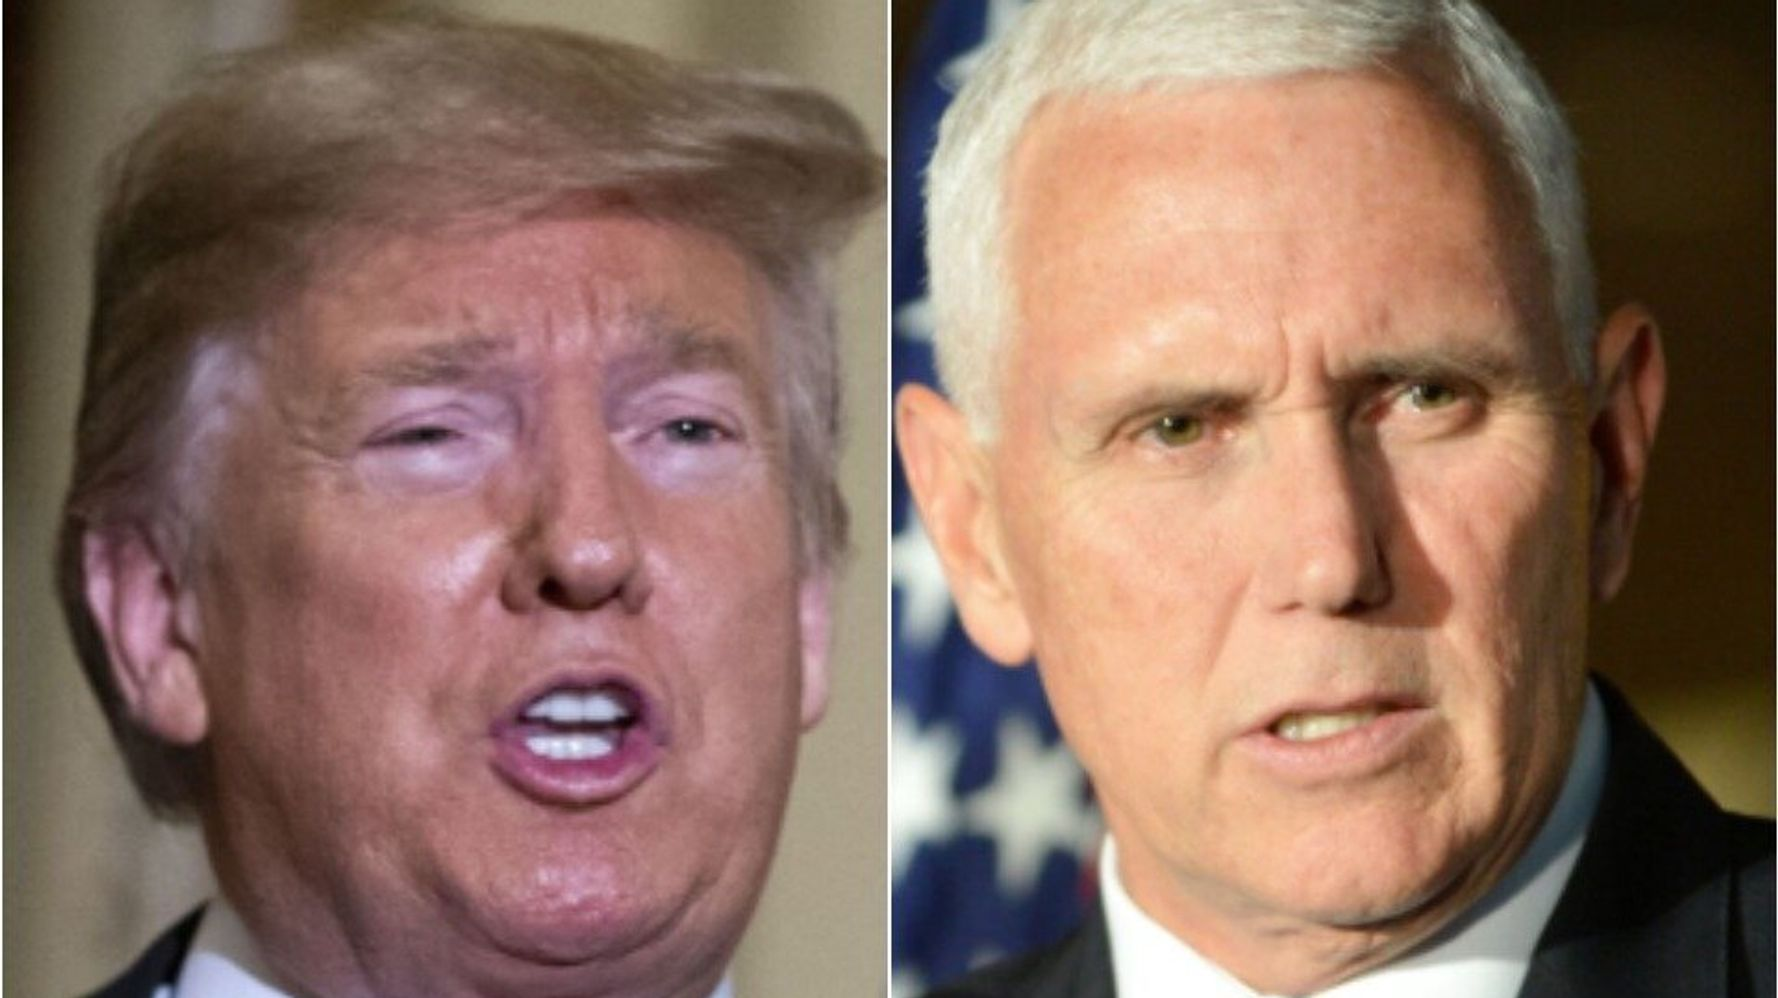 Westlake Legal Group 5ce7c60e210000b40ed0f0d5 Trump Just Sent Another Big Signal He'll Throw Pence Under The Bus, Maddow Says